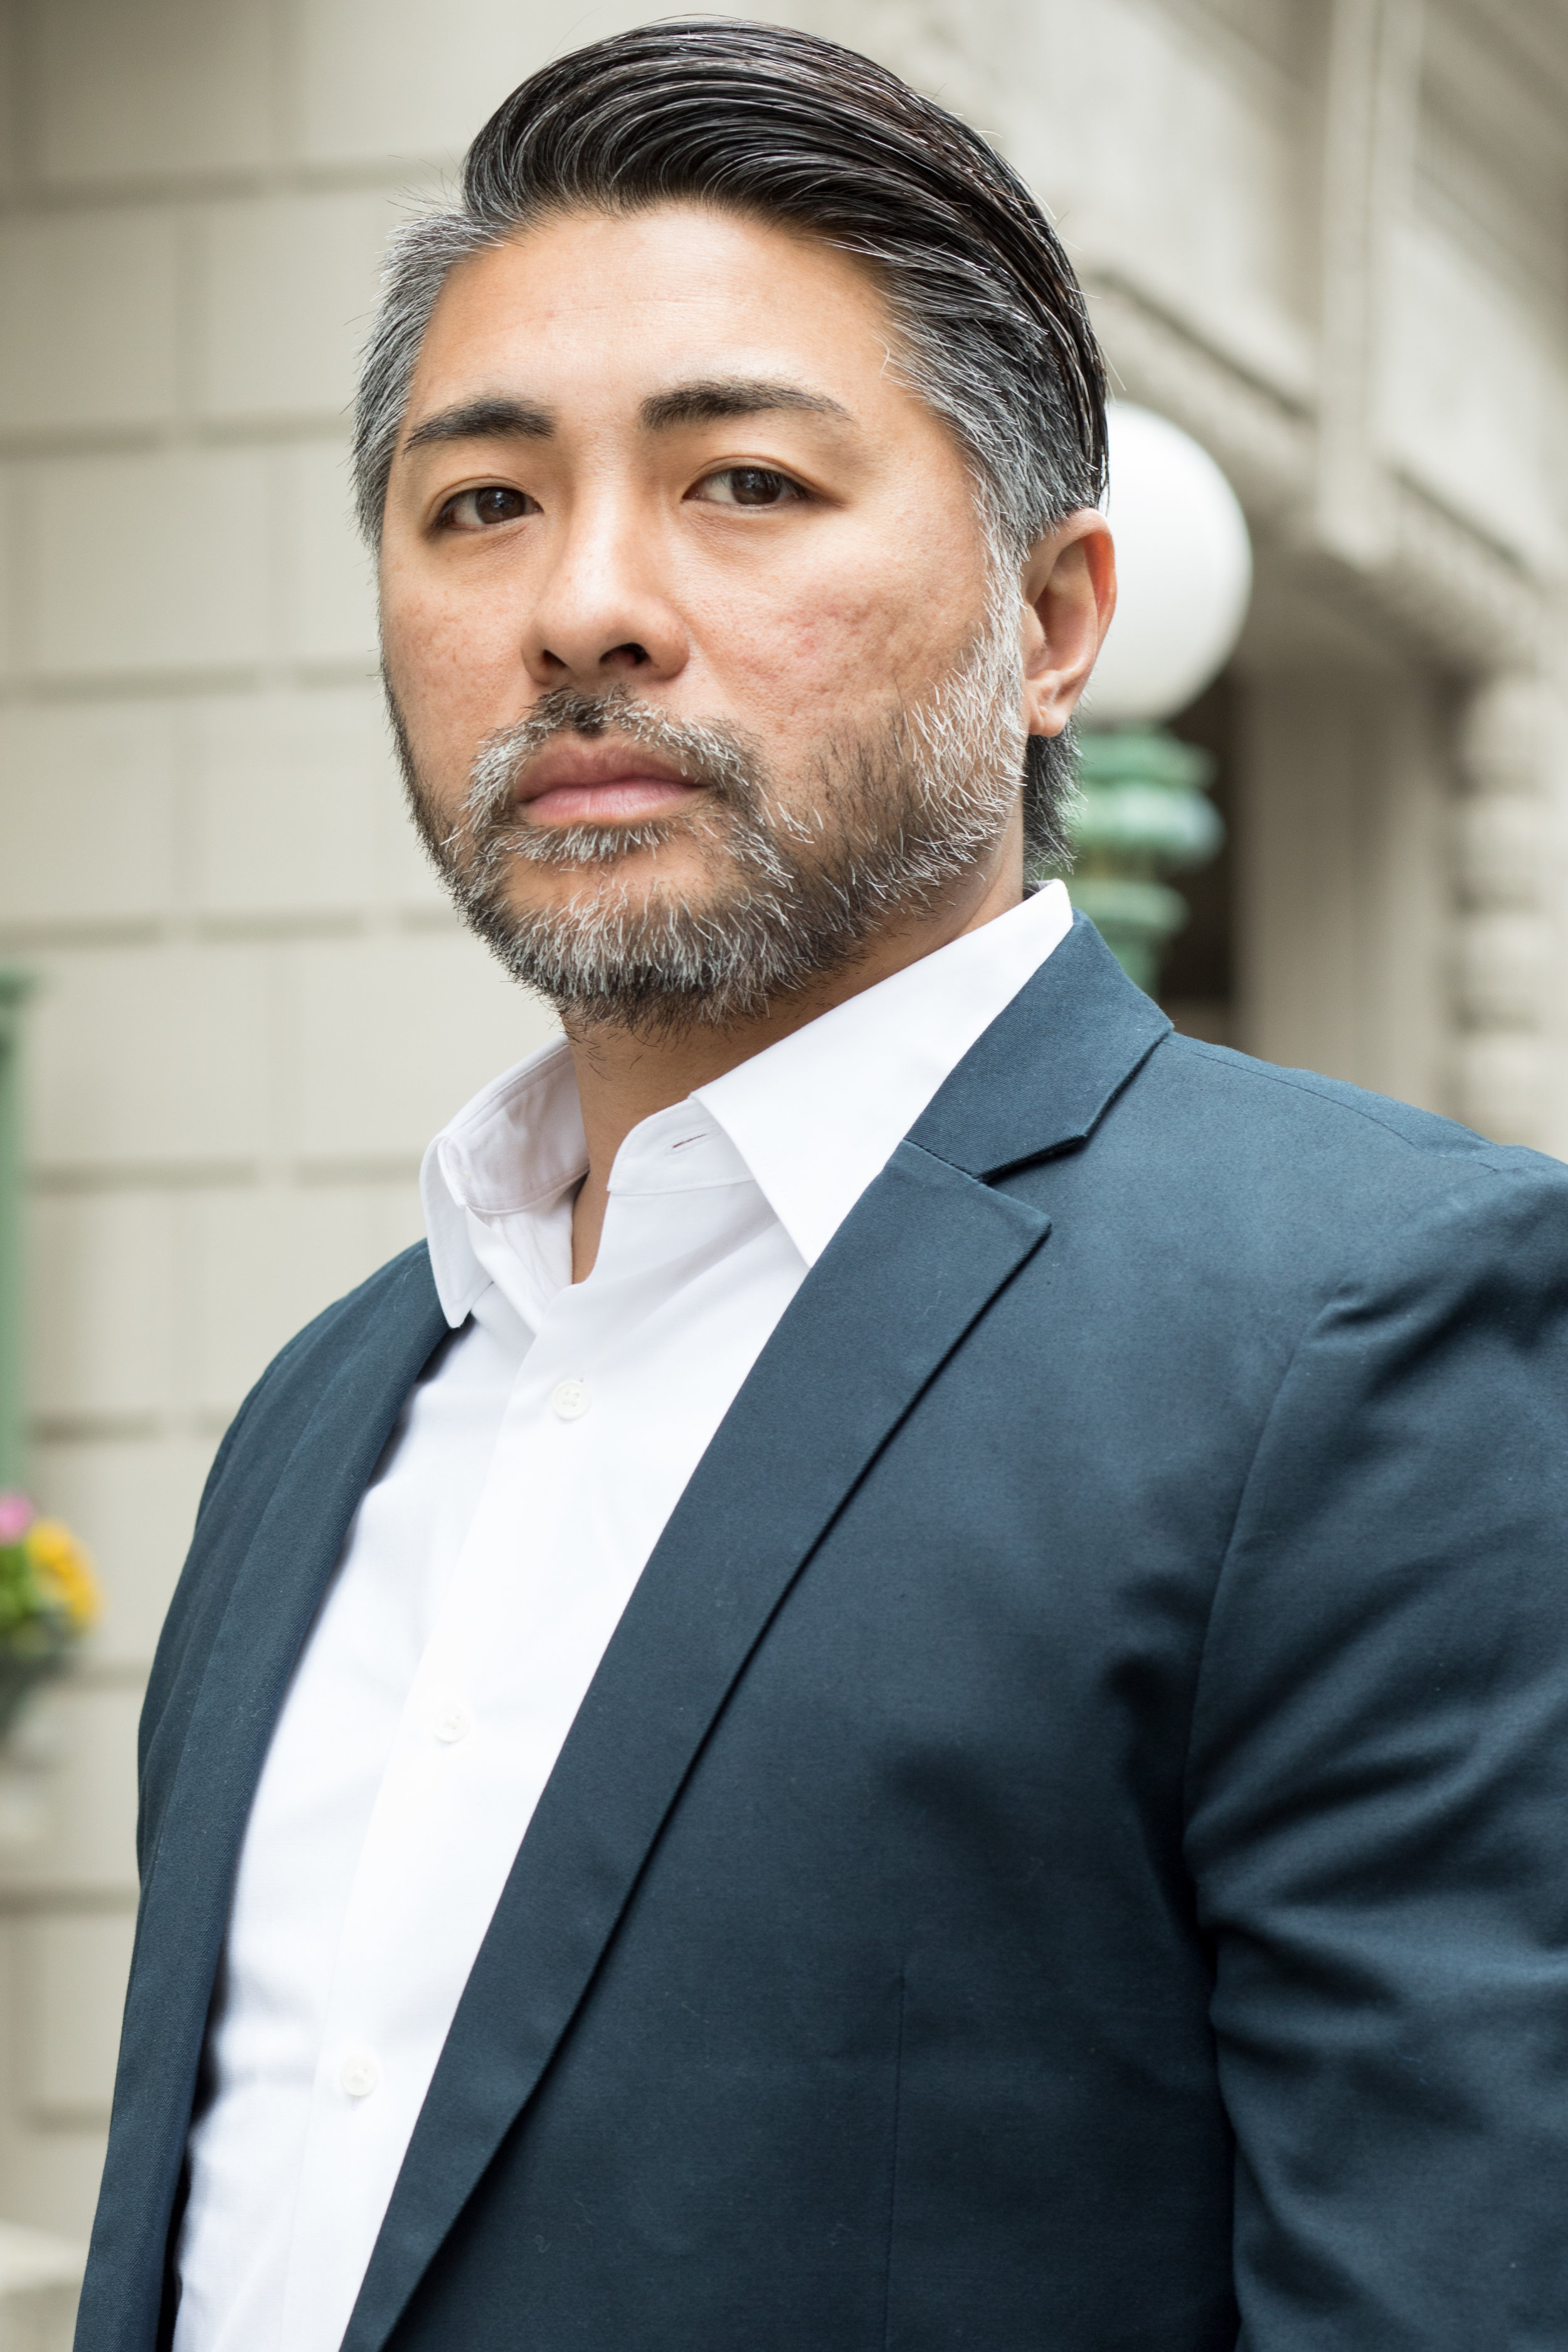 Philippe Agustin - CEO, Founder